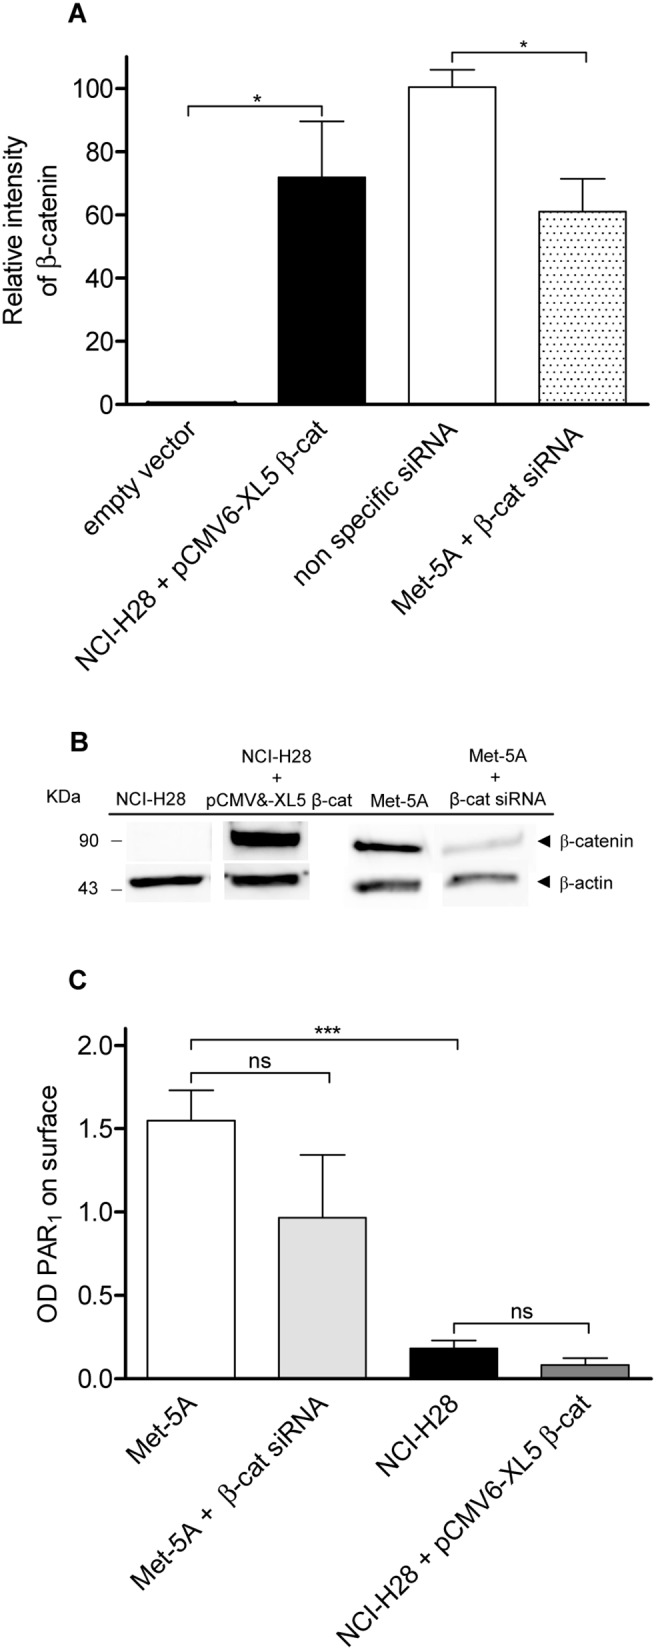 Neither β-catenin rescue nor deletion modify cell surface PAR 1 expression. NCI-H28 cells were transiently transfected with plasmide vector containing CTNNB1 or empty vector (Ctrl) while Met-5A cells were transfected with nonspecific (Ctrls) or specific β-catenin siRNA as described in Materials and Methods. A, relative expression levels of β-catenin. Transfected cells were lysed and total cell proteins were analysed by immunoblot using an anti-β-catenin antibody. Then membranes were reprobed with an anti-β-actin antibody. Data are expressed as arbitrary unit (fold variation over Ctrl) after normalization by β-actin. Data shown are mean ± SEM of three independent experiments. The differences of β-catenin relative levels between Ctrls and cell transfected with the recombinant vector or specific siRNA were significant (*P≤0.05) by one-way ANOVA followed by Bonferroni's multiple comparison test (n = 3). B, a representative immunoblot. C, cell surface PAR 1 expression measured by ELISA assay. Antibody binding to fixed transfected cells was detected by horseradish peroxidise-conjugated secondary antibody. Data represent the mean ± SEM of three independent experiments performed in triplicate. The differences in cell surface PAR 1 expression between Ctrls and cell transfected with the recombinant vector or specific siRNA were significant (***P≤0.001) by one-way ANOVA followed by Bonferroni's multiple comparison test (n = 3).